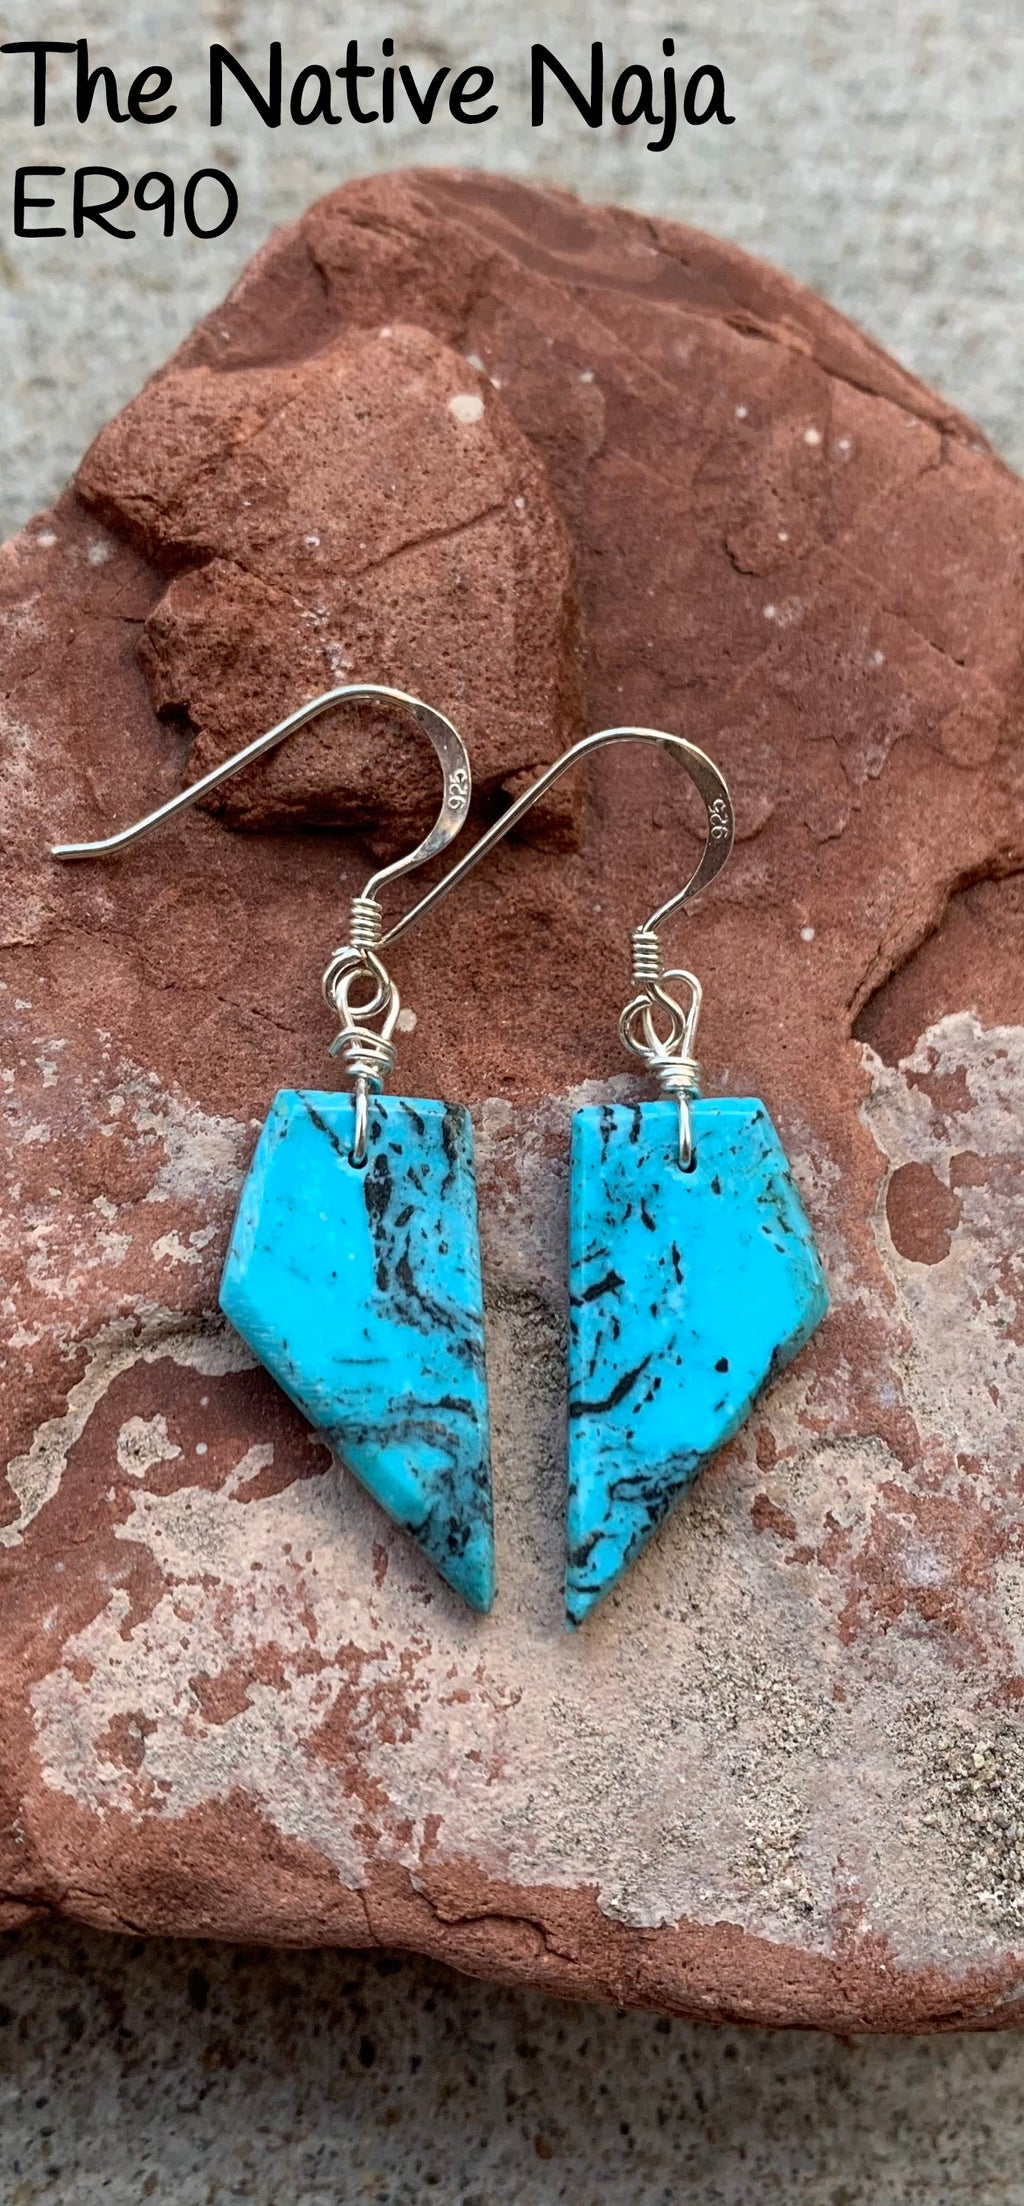 Dainty Navajo Genuine Sterling Silver & Kingman Turquoise French Hook Slab Earrings ER90